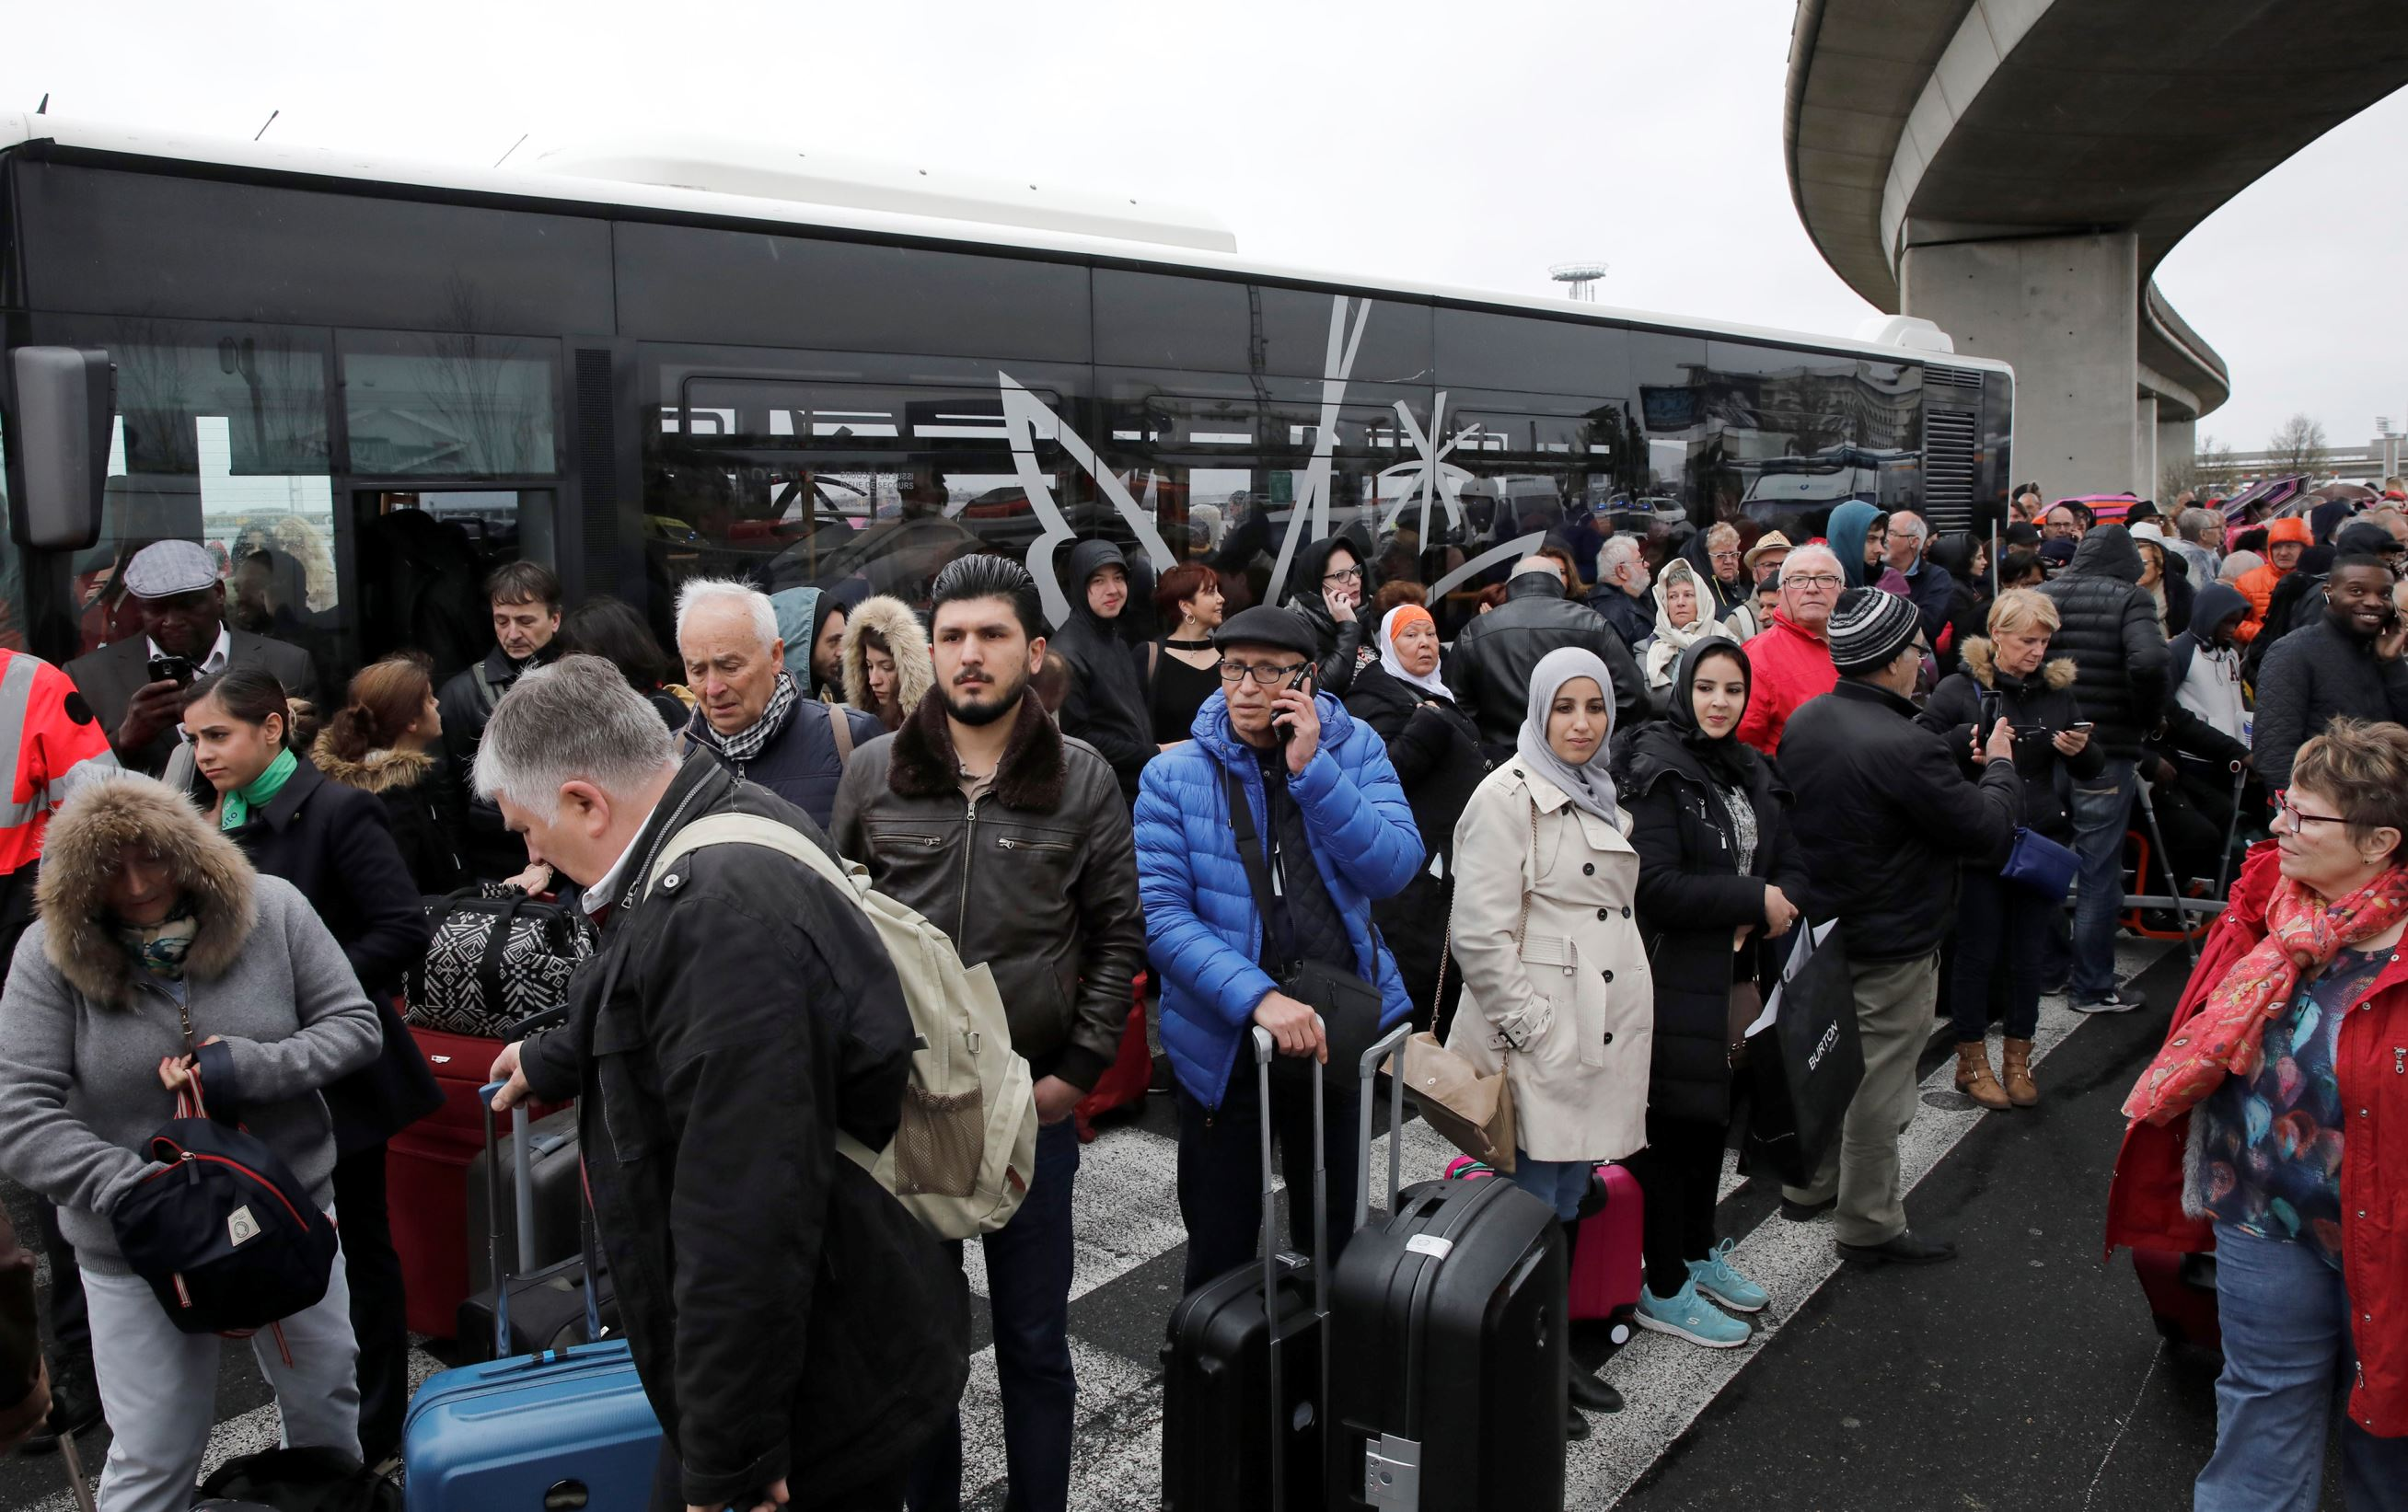 Slide 7 of 14: Passengers wait at Orly airport southern terminal after a shooting incident near Paris, France March 18, 2017.